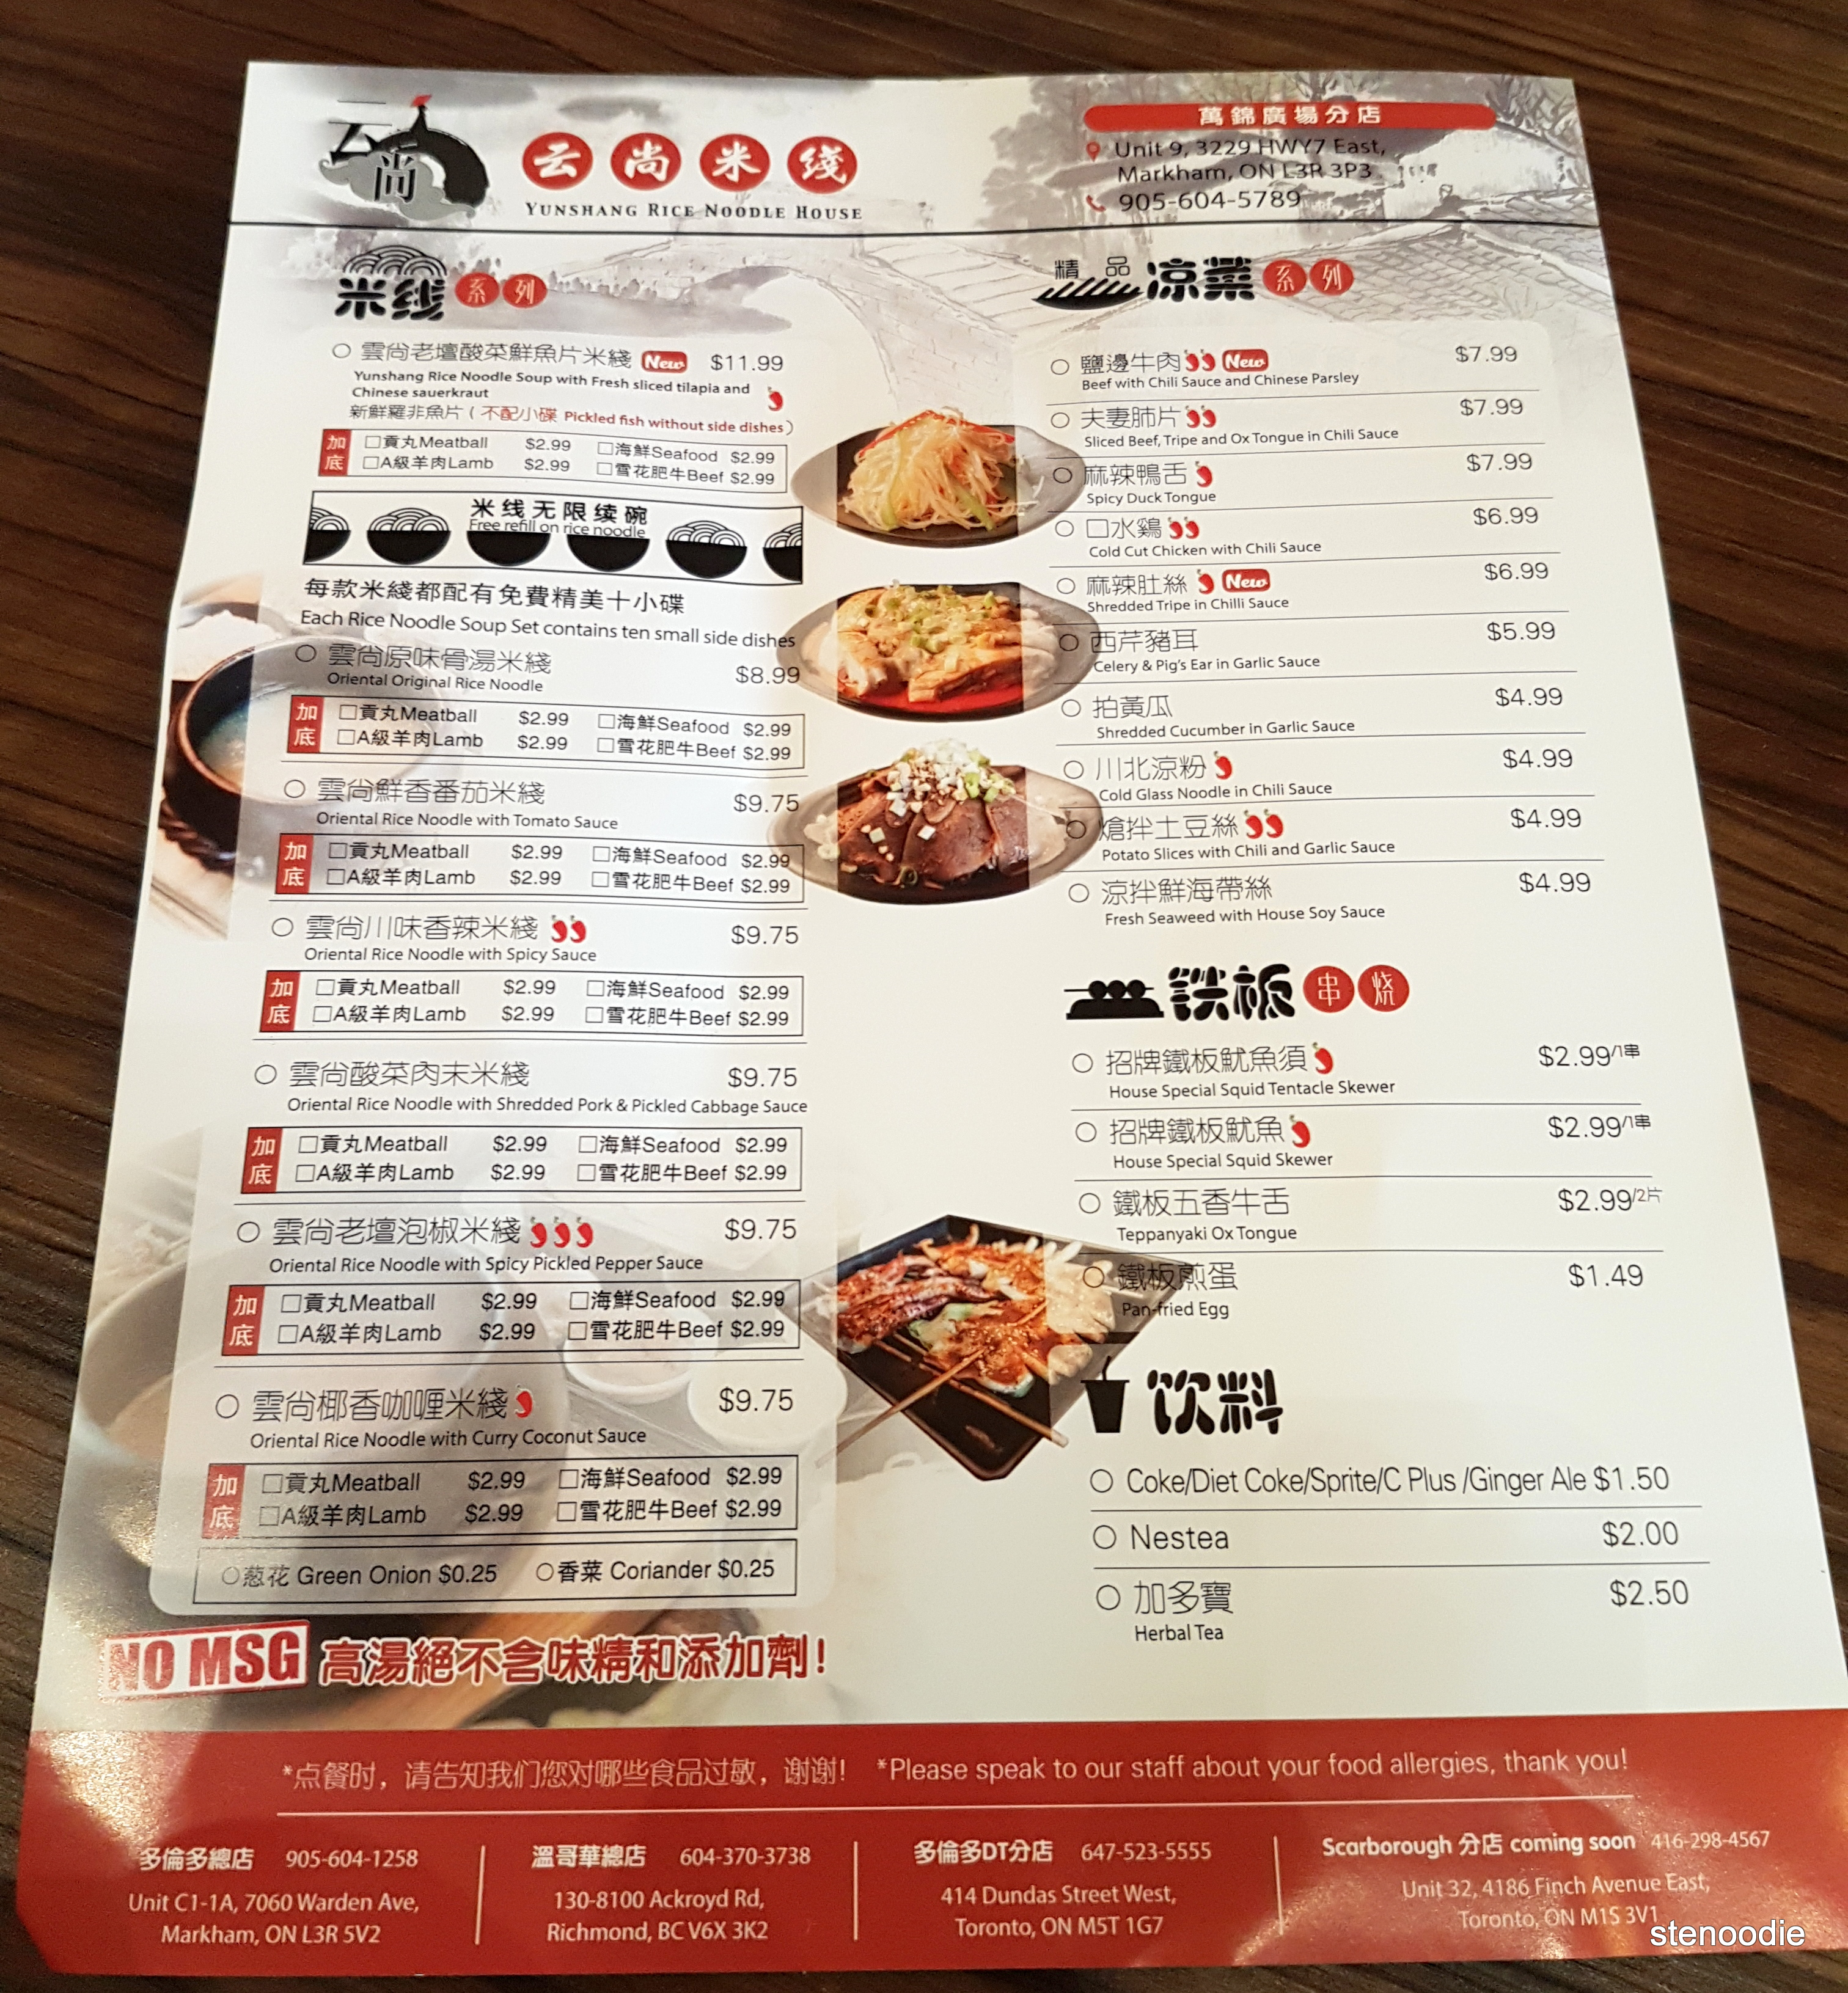 Yunshang Rice Noodle House FMP menu and prices